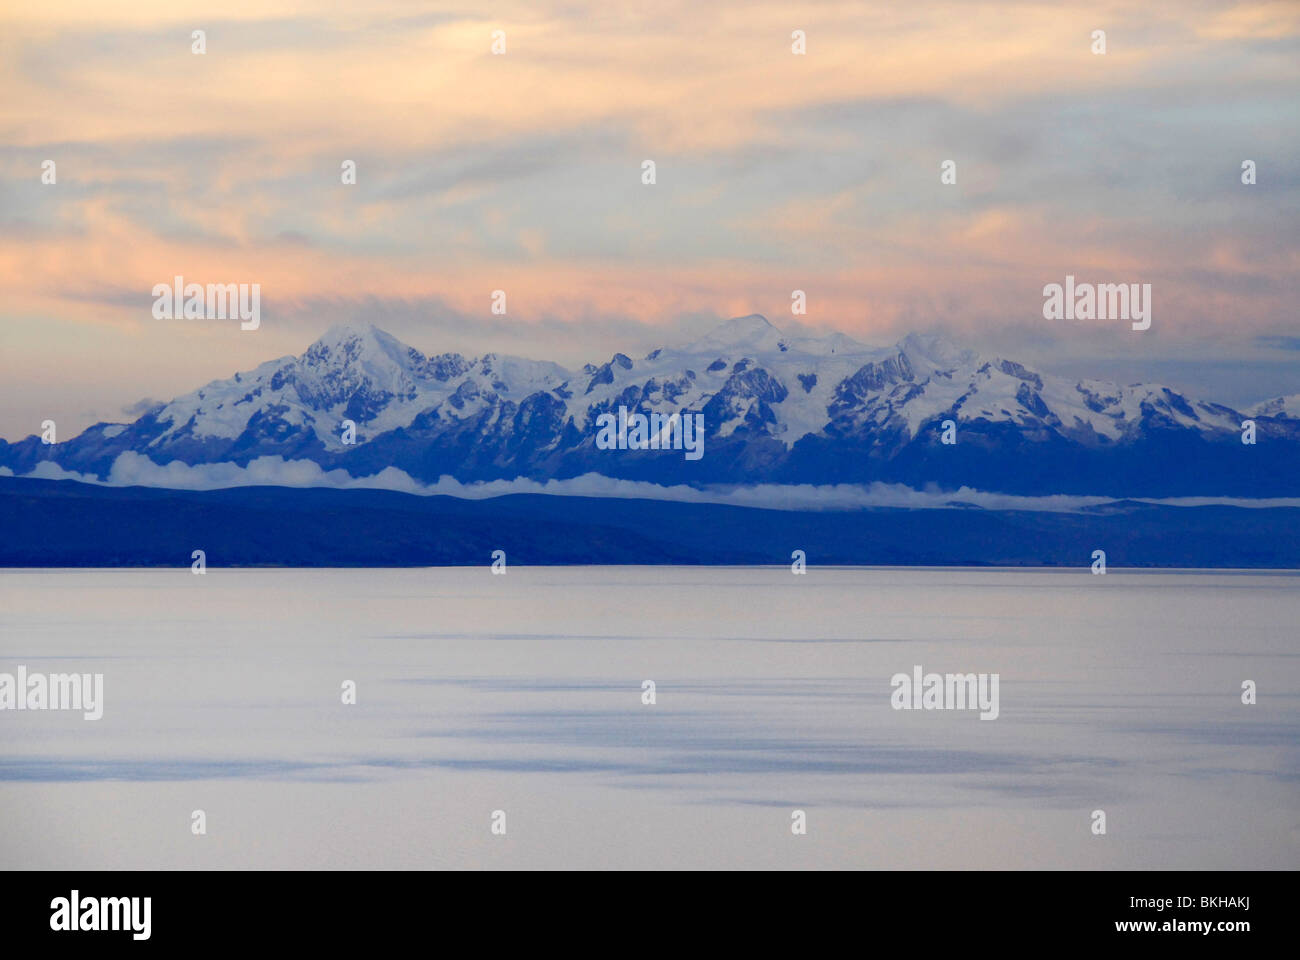 View of snow capped mountains as seen from Isla del Sol, Lake Titicaca, Bolivia, South America - Stock Image